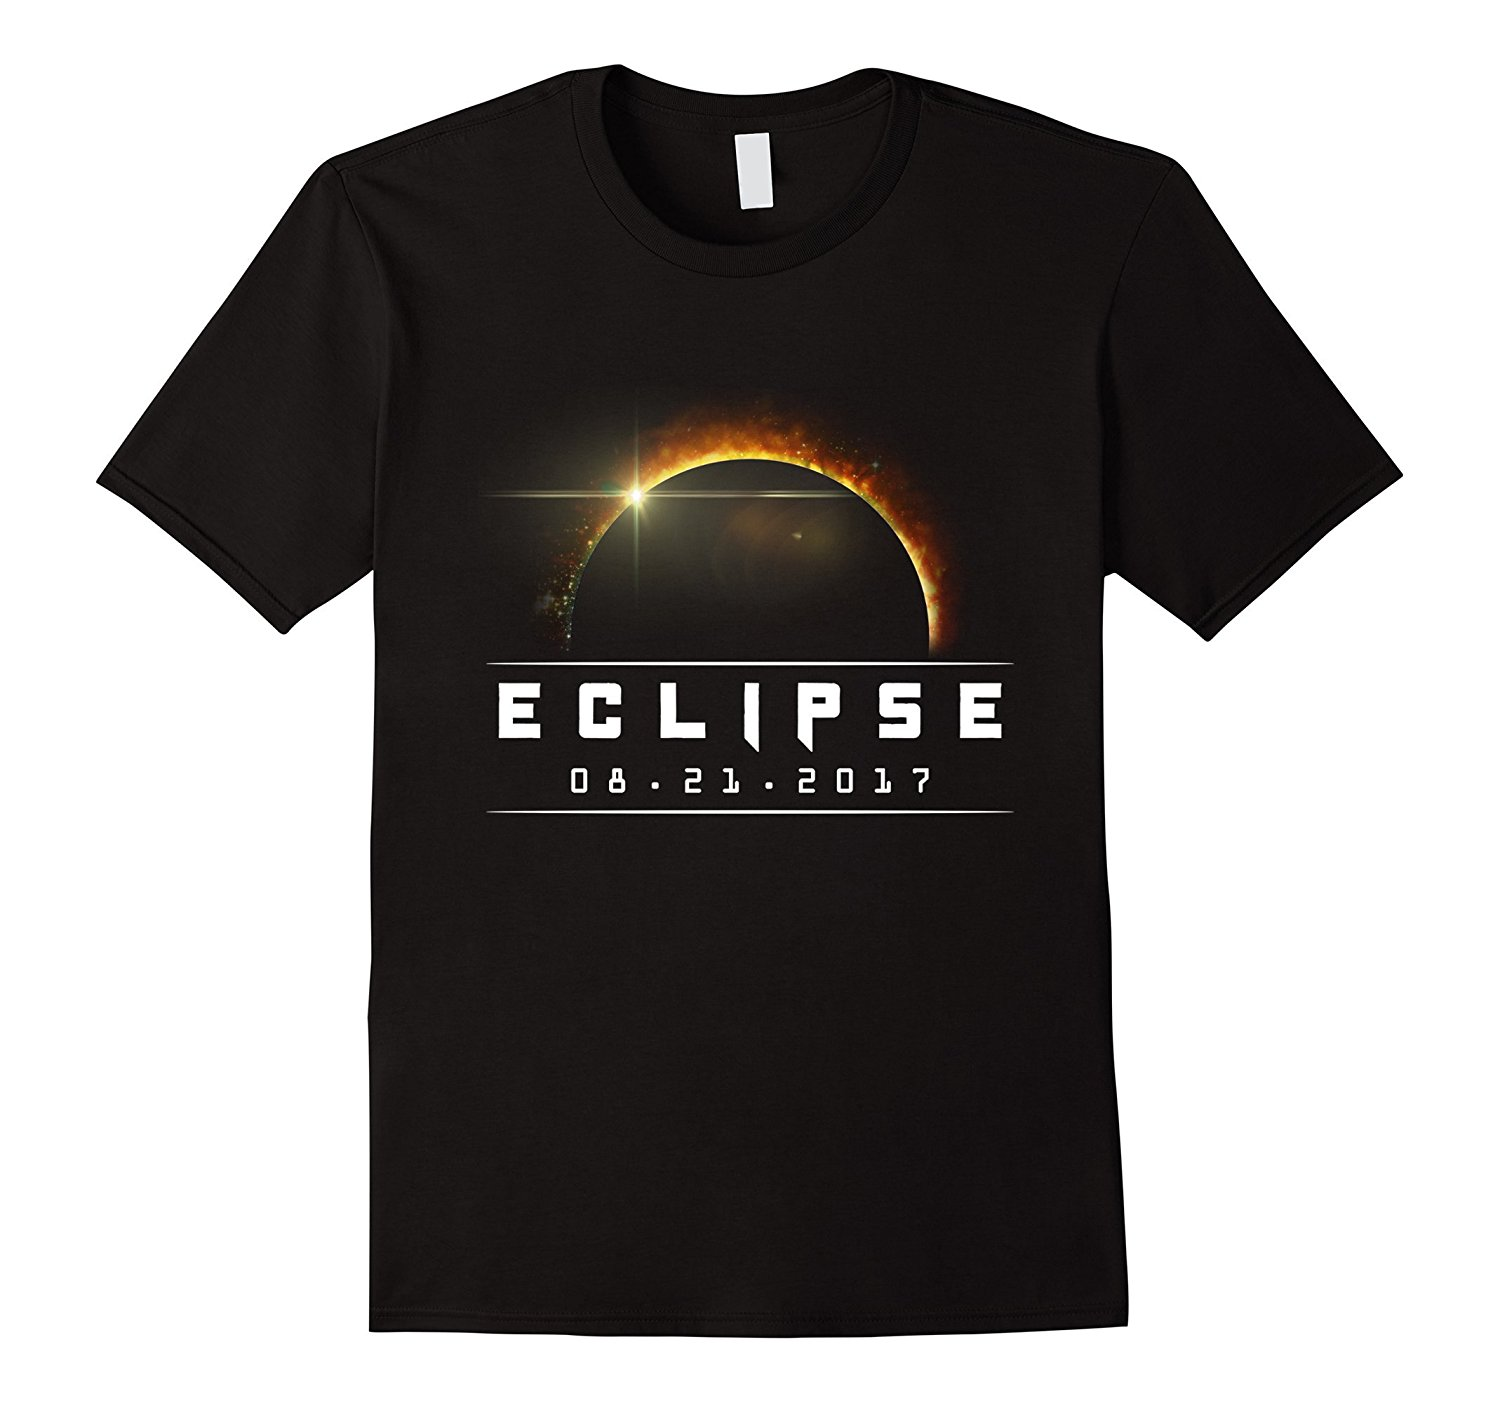 2018 New Summer High Quality Tee Shirt Commemorative Total Eclipse T-Shirt Aug 21st, 2017 - Red Cool T-shirt